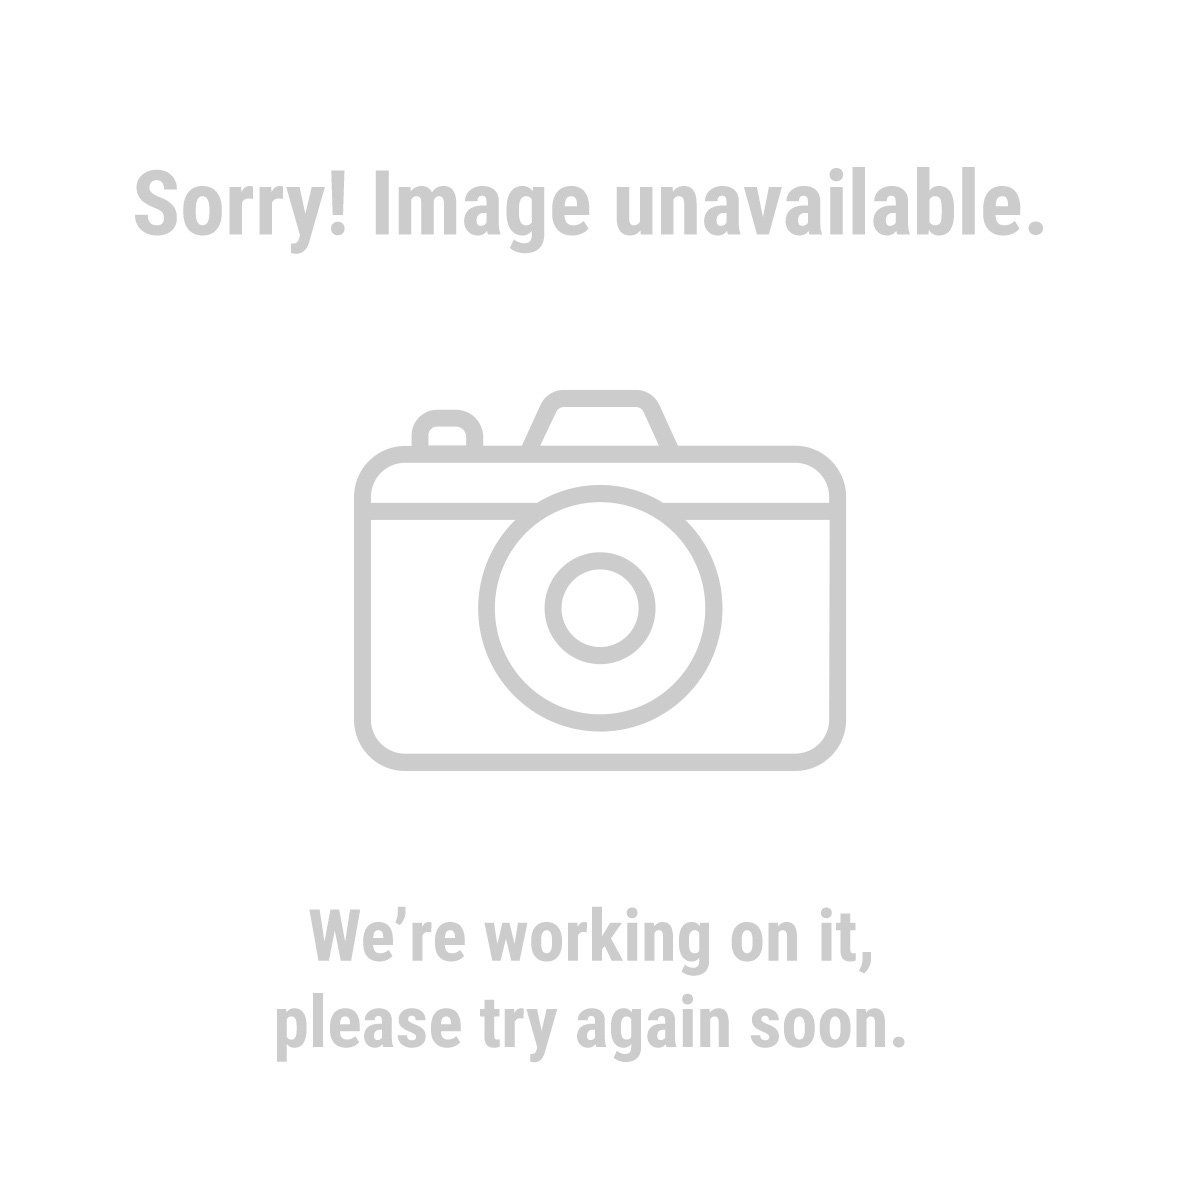 Central Forge® 30999 4 In. Drill Press Vise